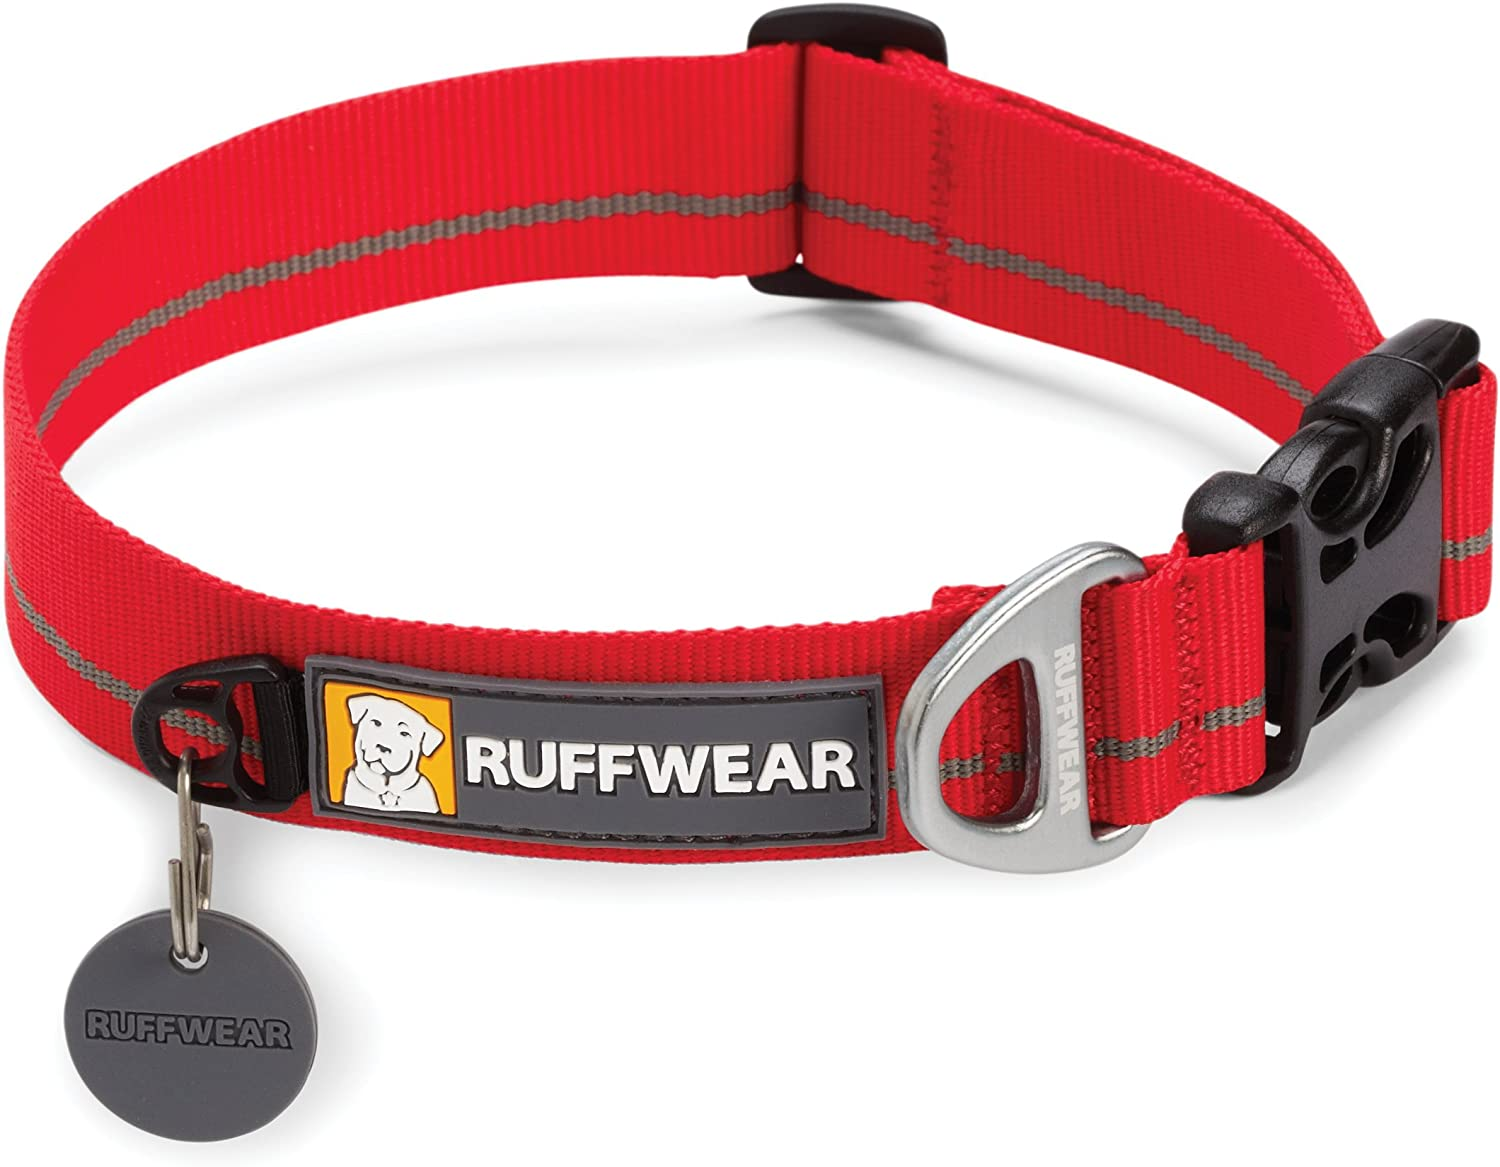 Ruffwear Hoopie Collar for Pets, Small, Red Currant